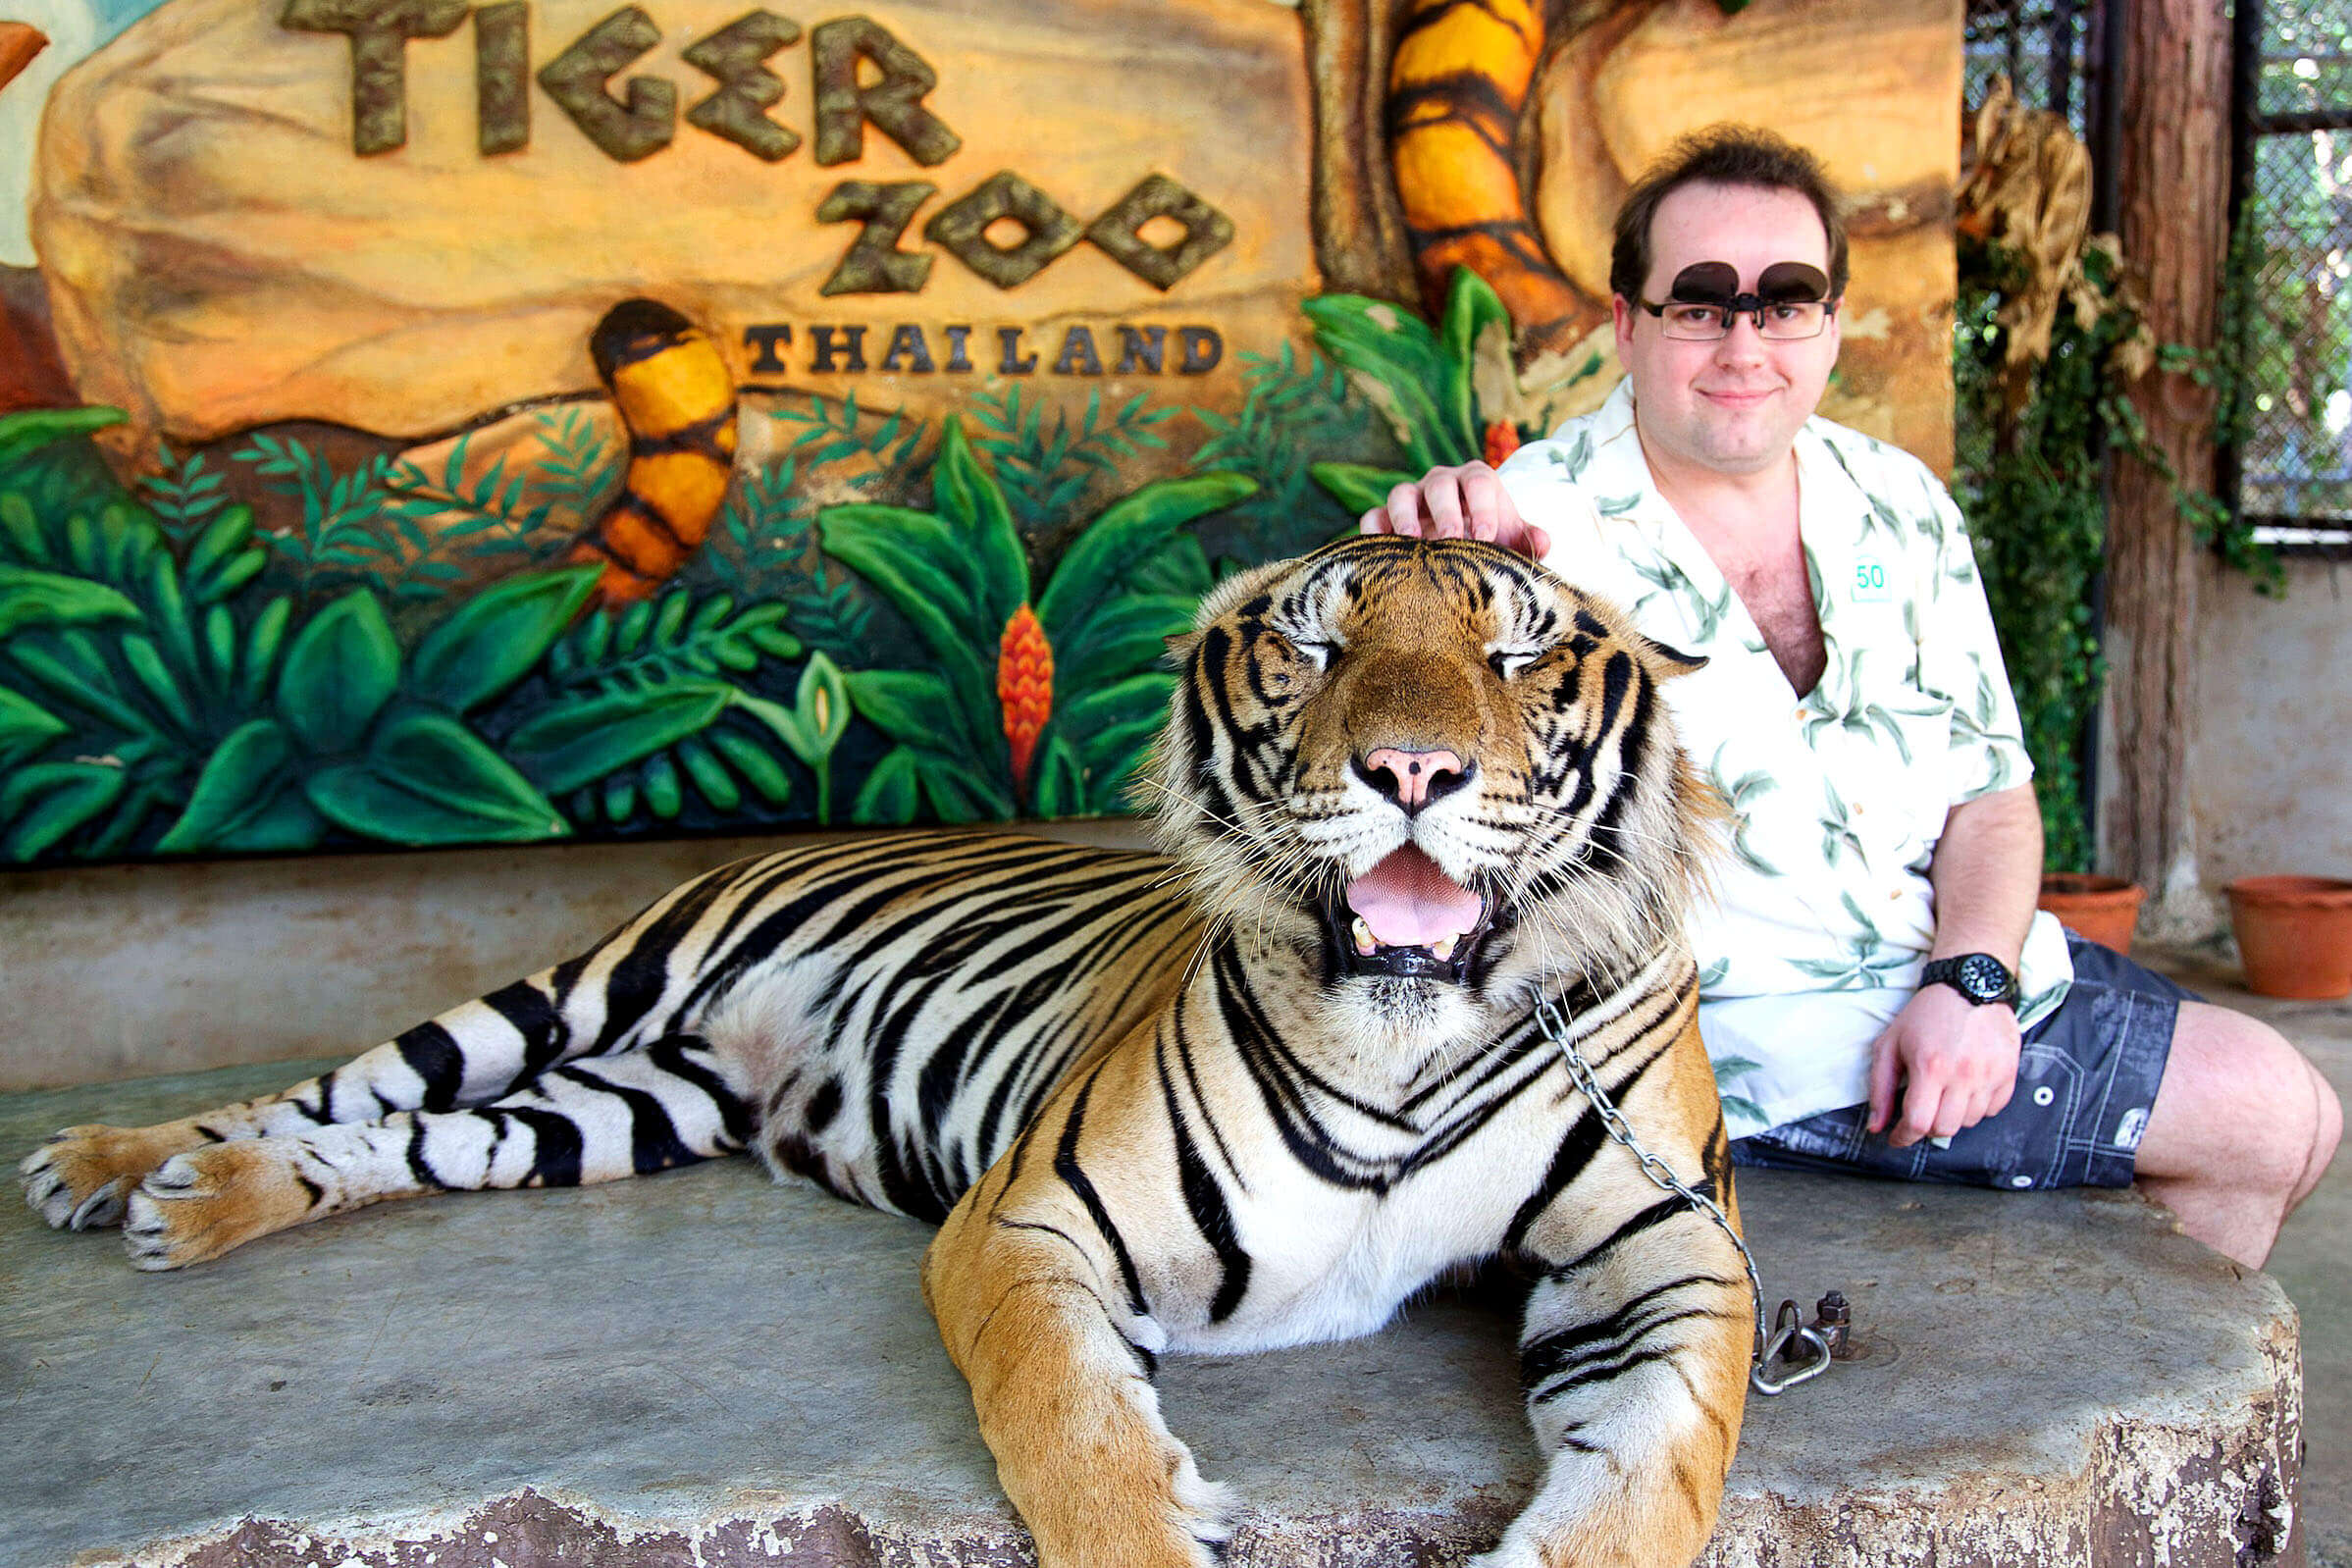 Tourists can see the tiger